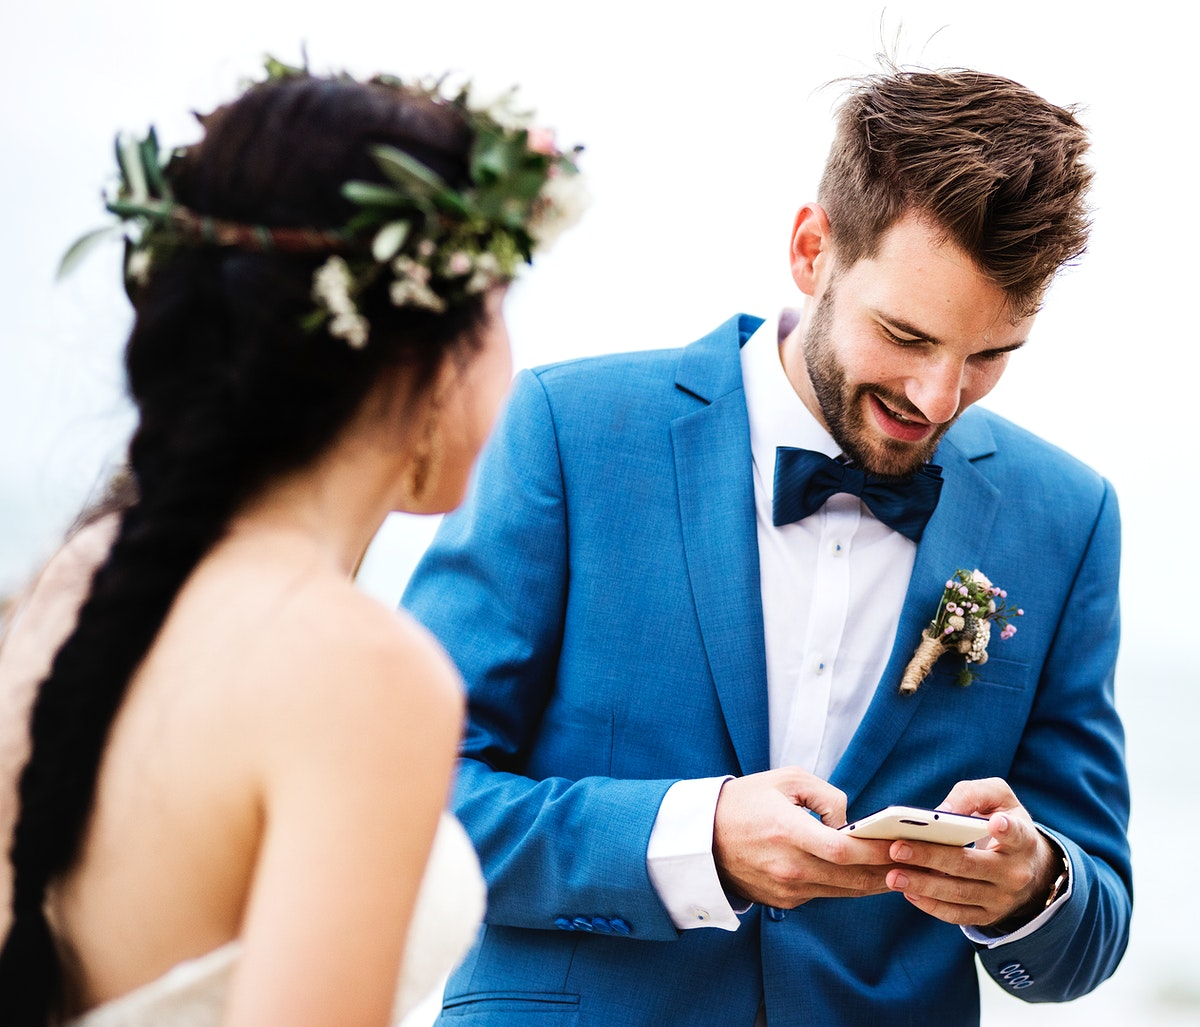 Groom checking his phone at beach wedding ceremony